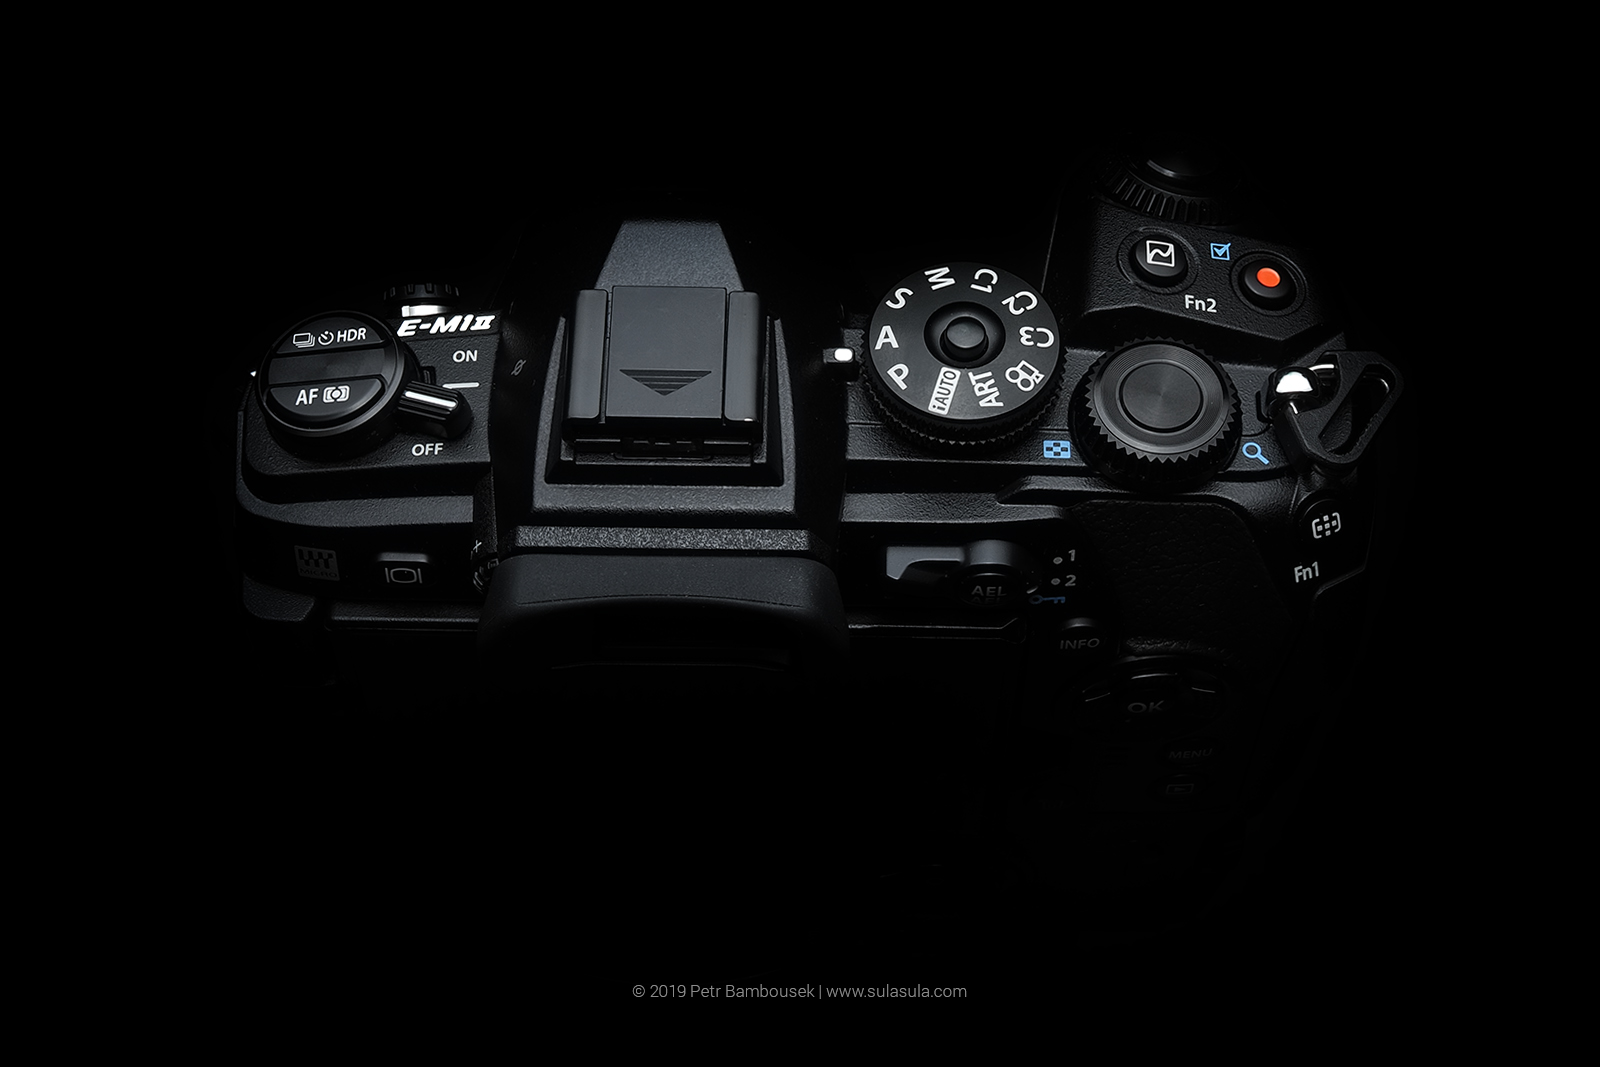 Olympus E-M1 Mark II - top panel buttons overview